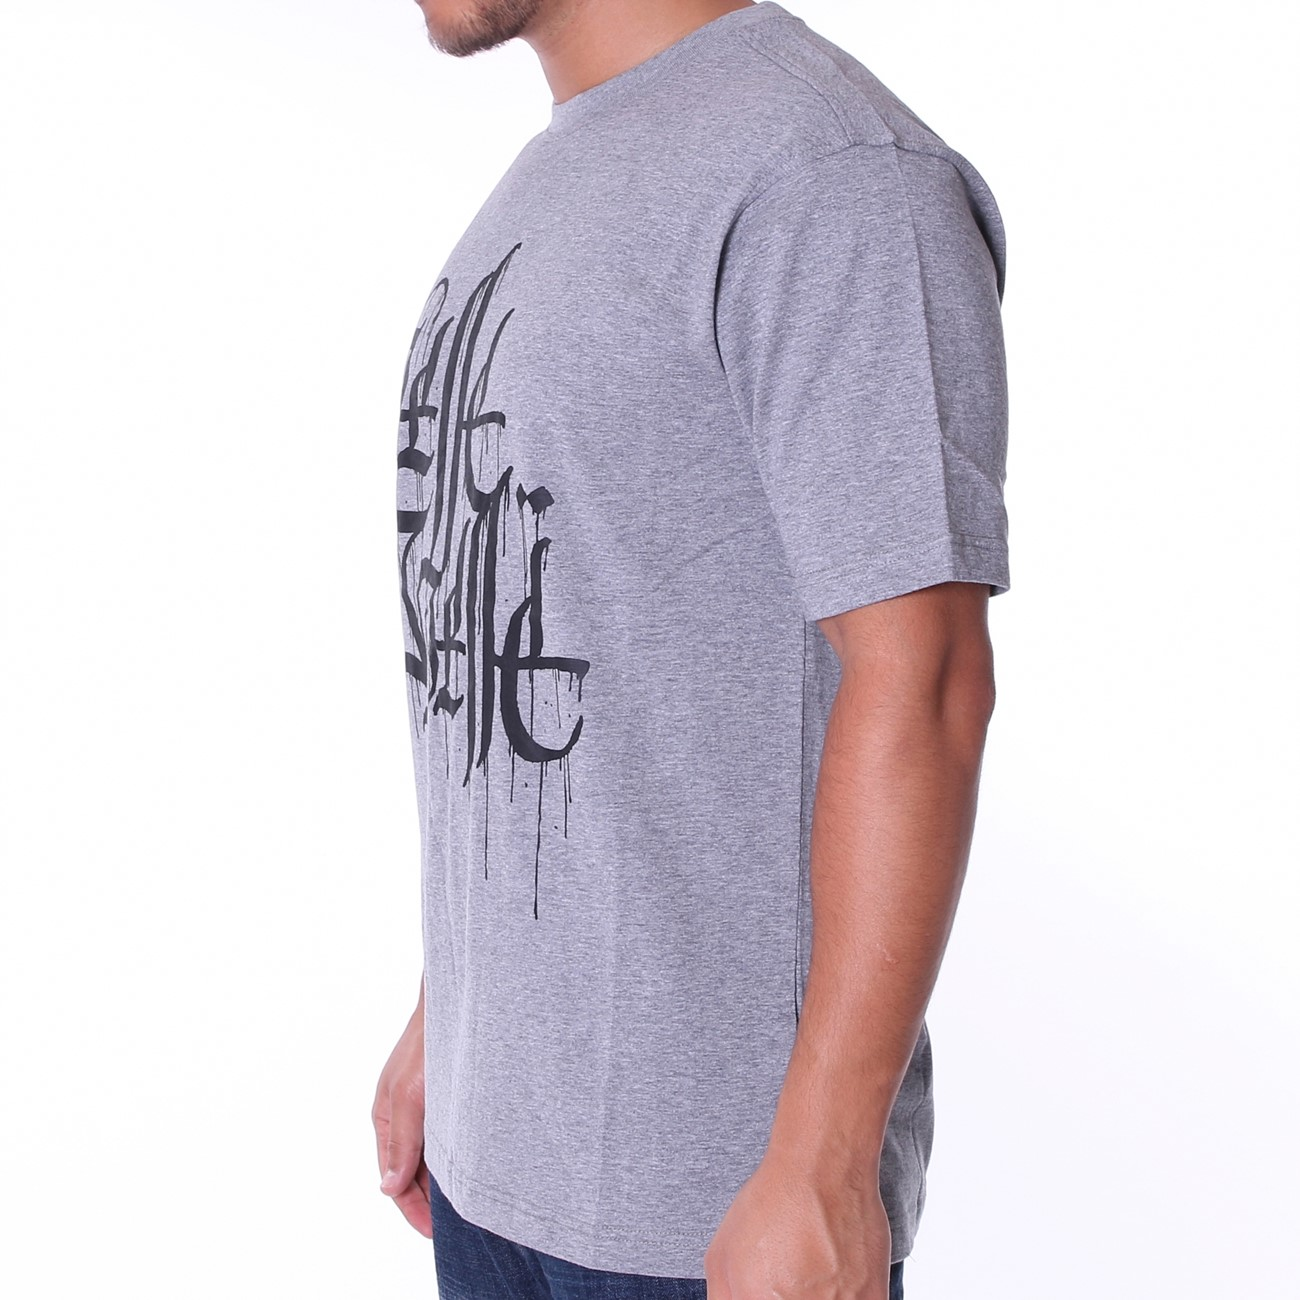 320583a3c0 The Wholesale T-Shirt Co Calligraphy T Shirt: Pelle Pelle Store (Europe